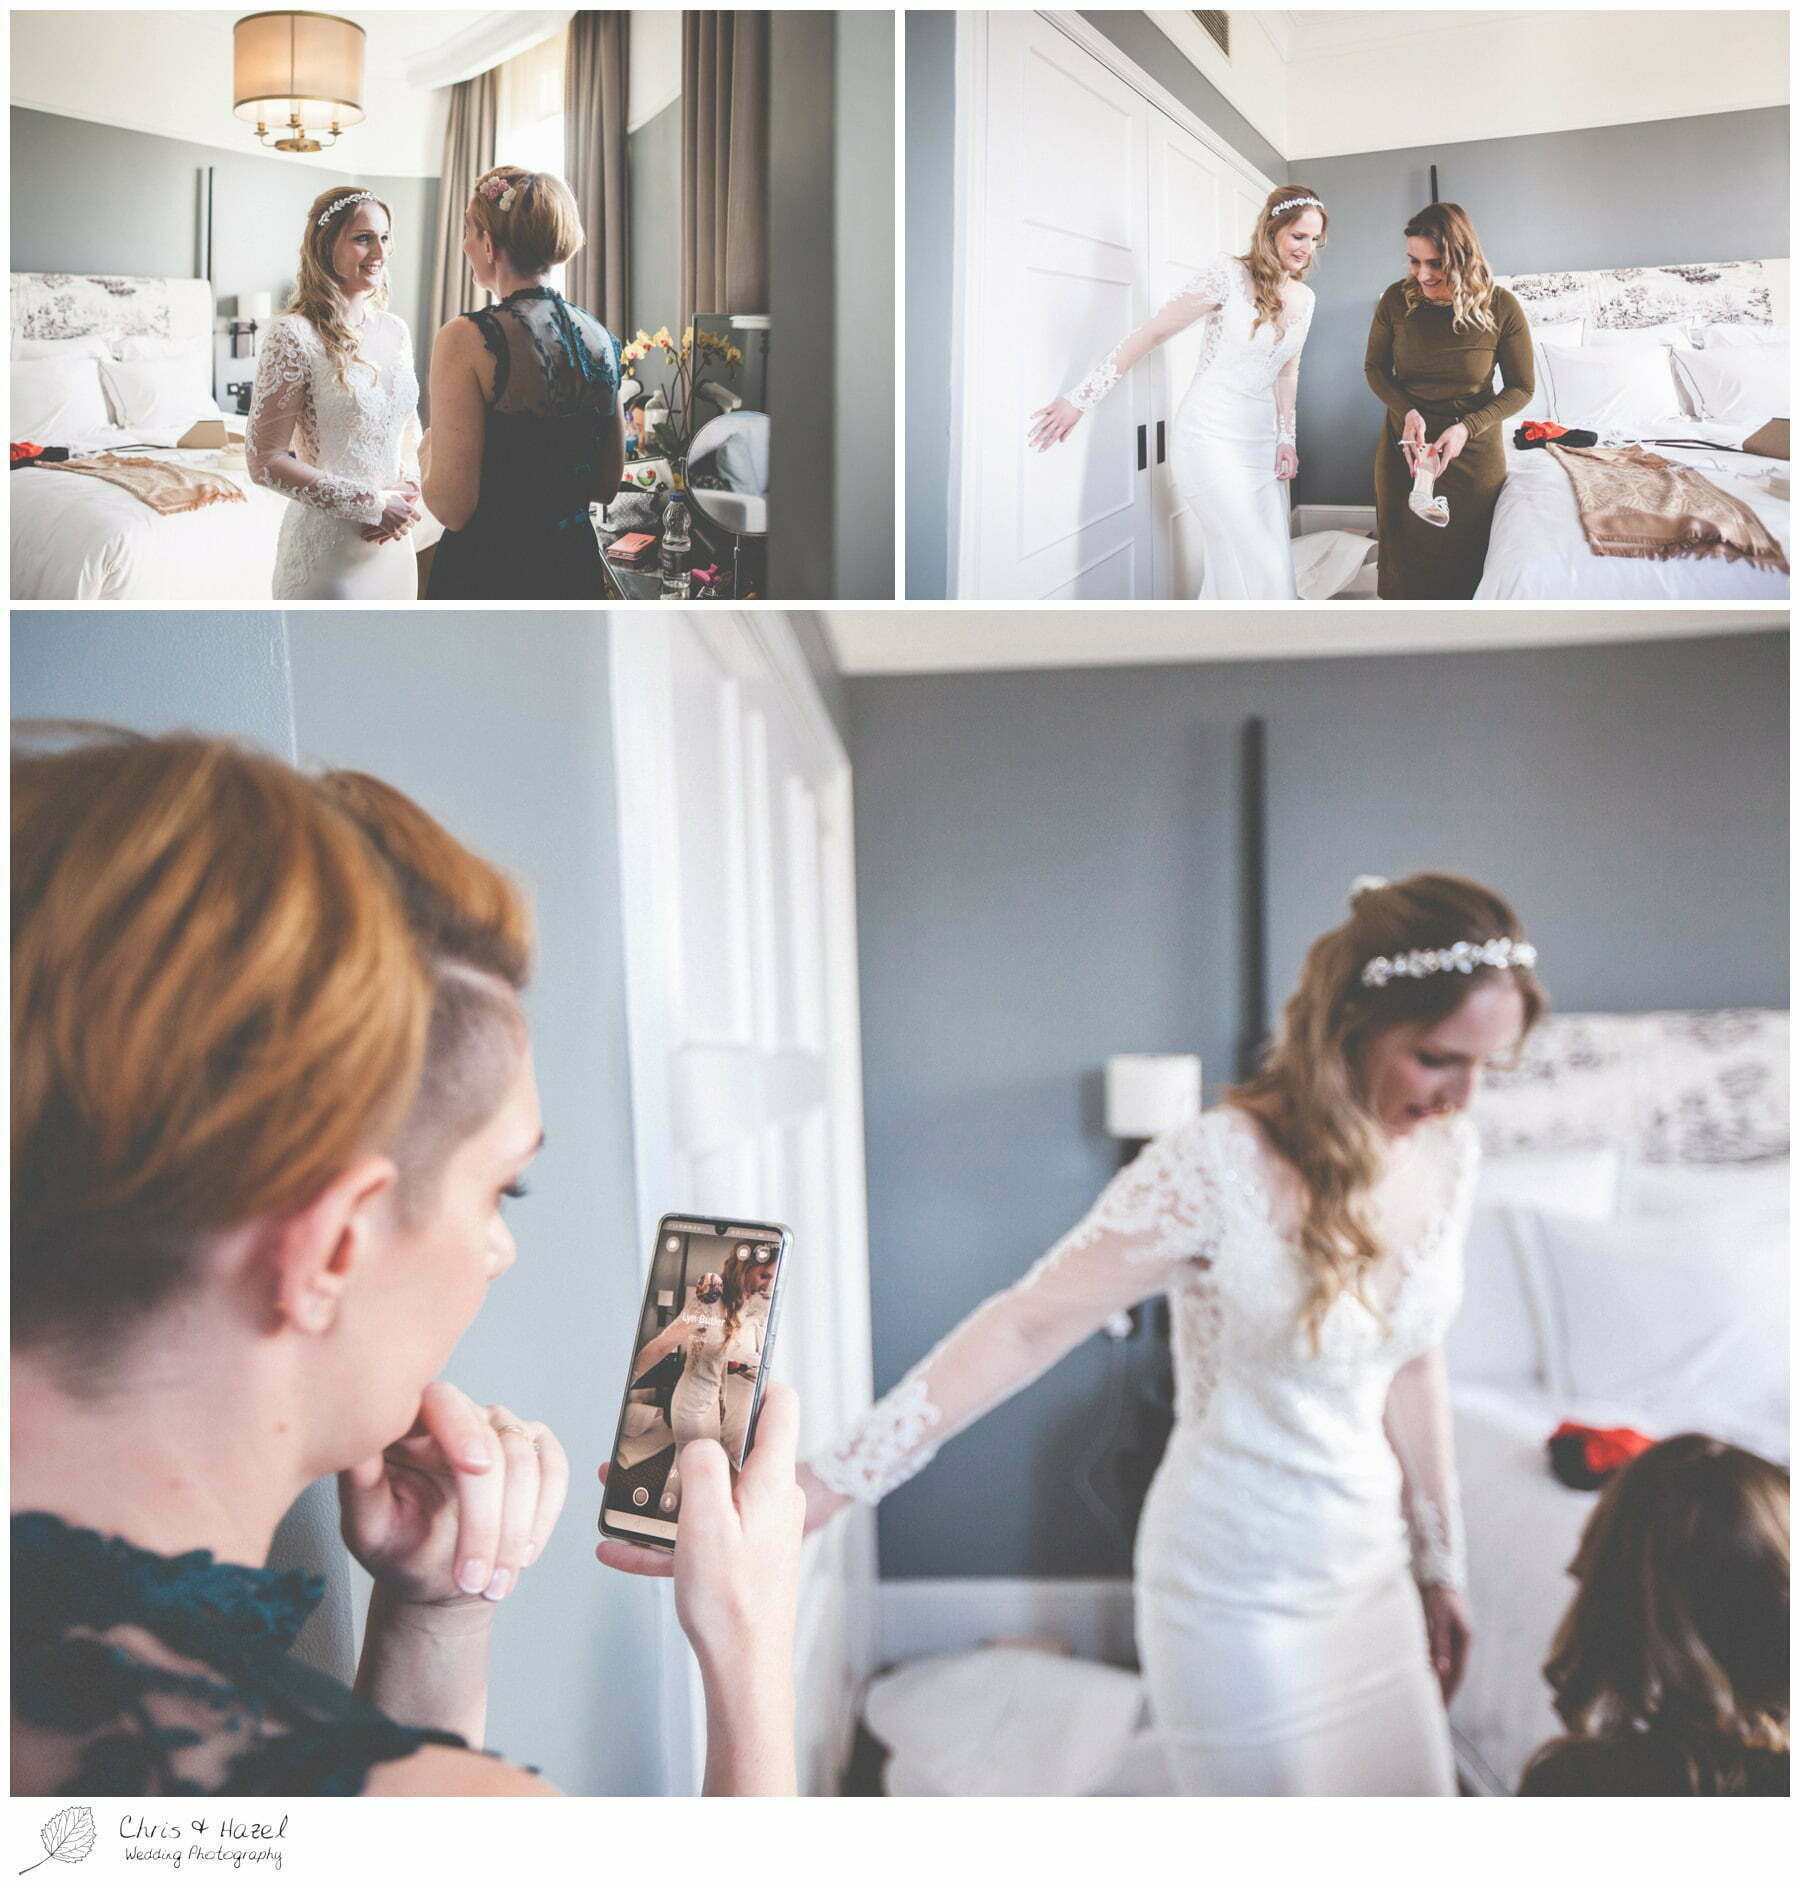 Bride getting ready, Wedding preparations, The Gainsborough Bath Spa hotel, Gainsborough Hotel Bath, documentary wedding photography, Chris and Hazel Wedding Photography Bath, Andy Frost Sian Upson